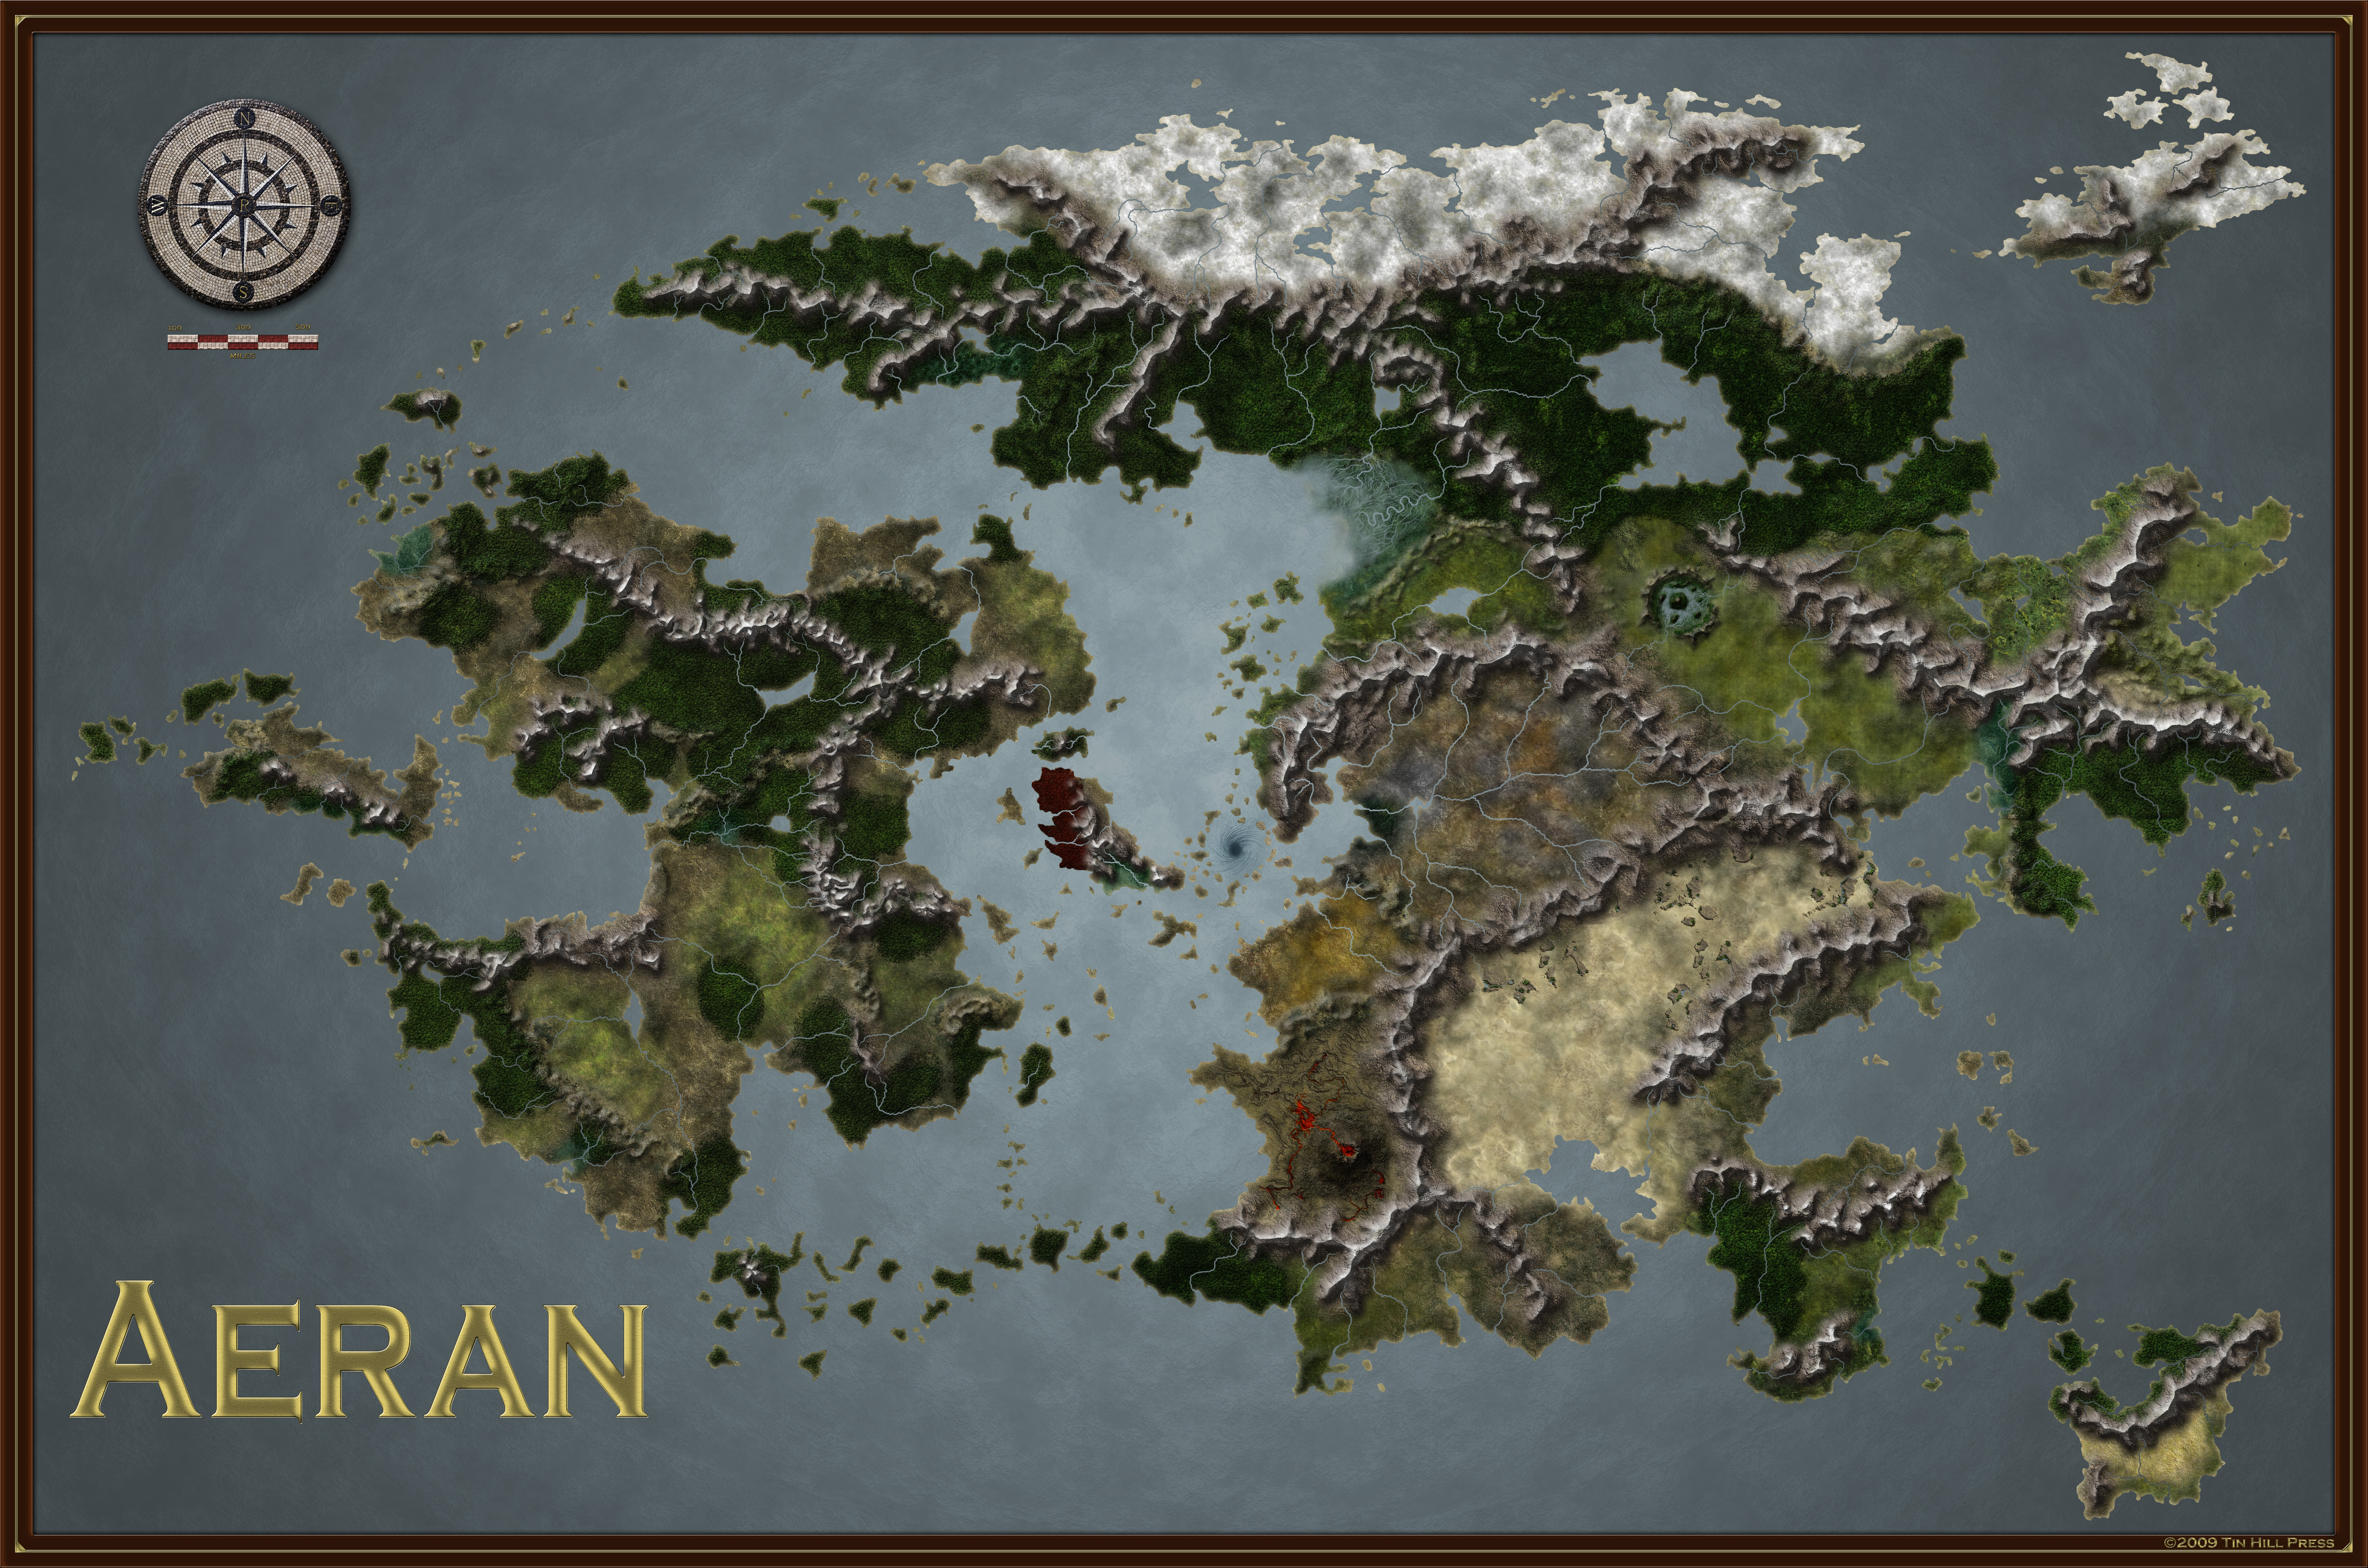 The World of Aeran by coyotemax